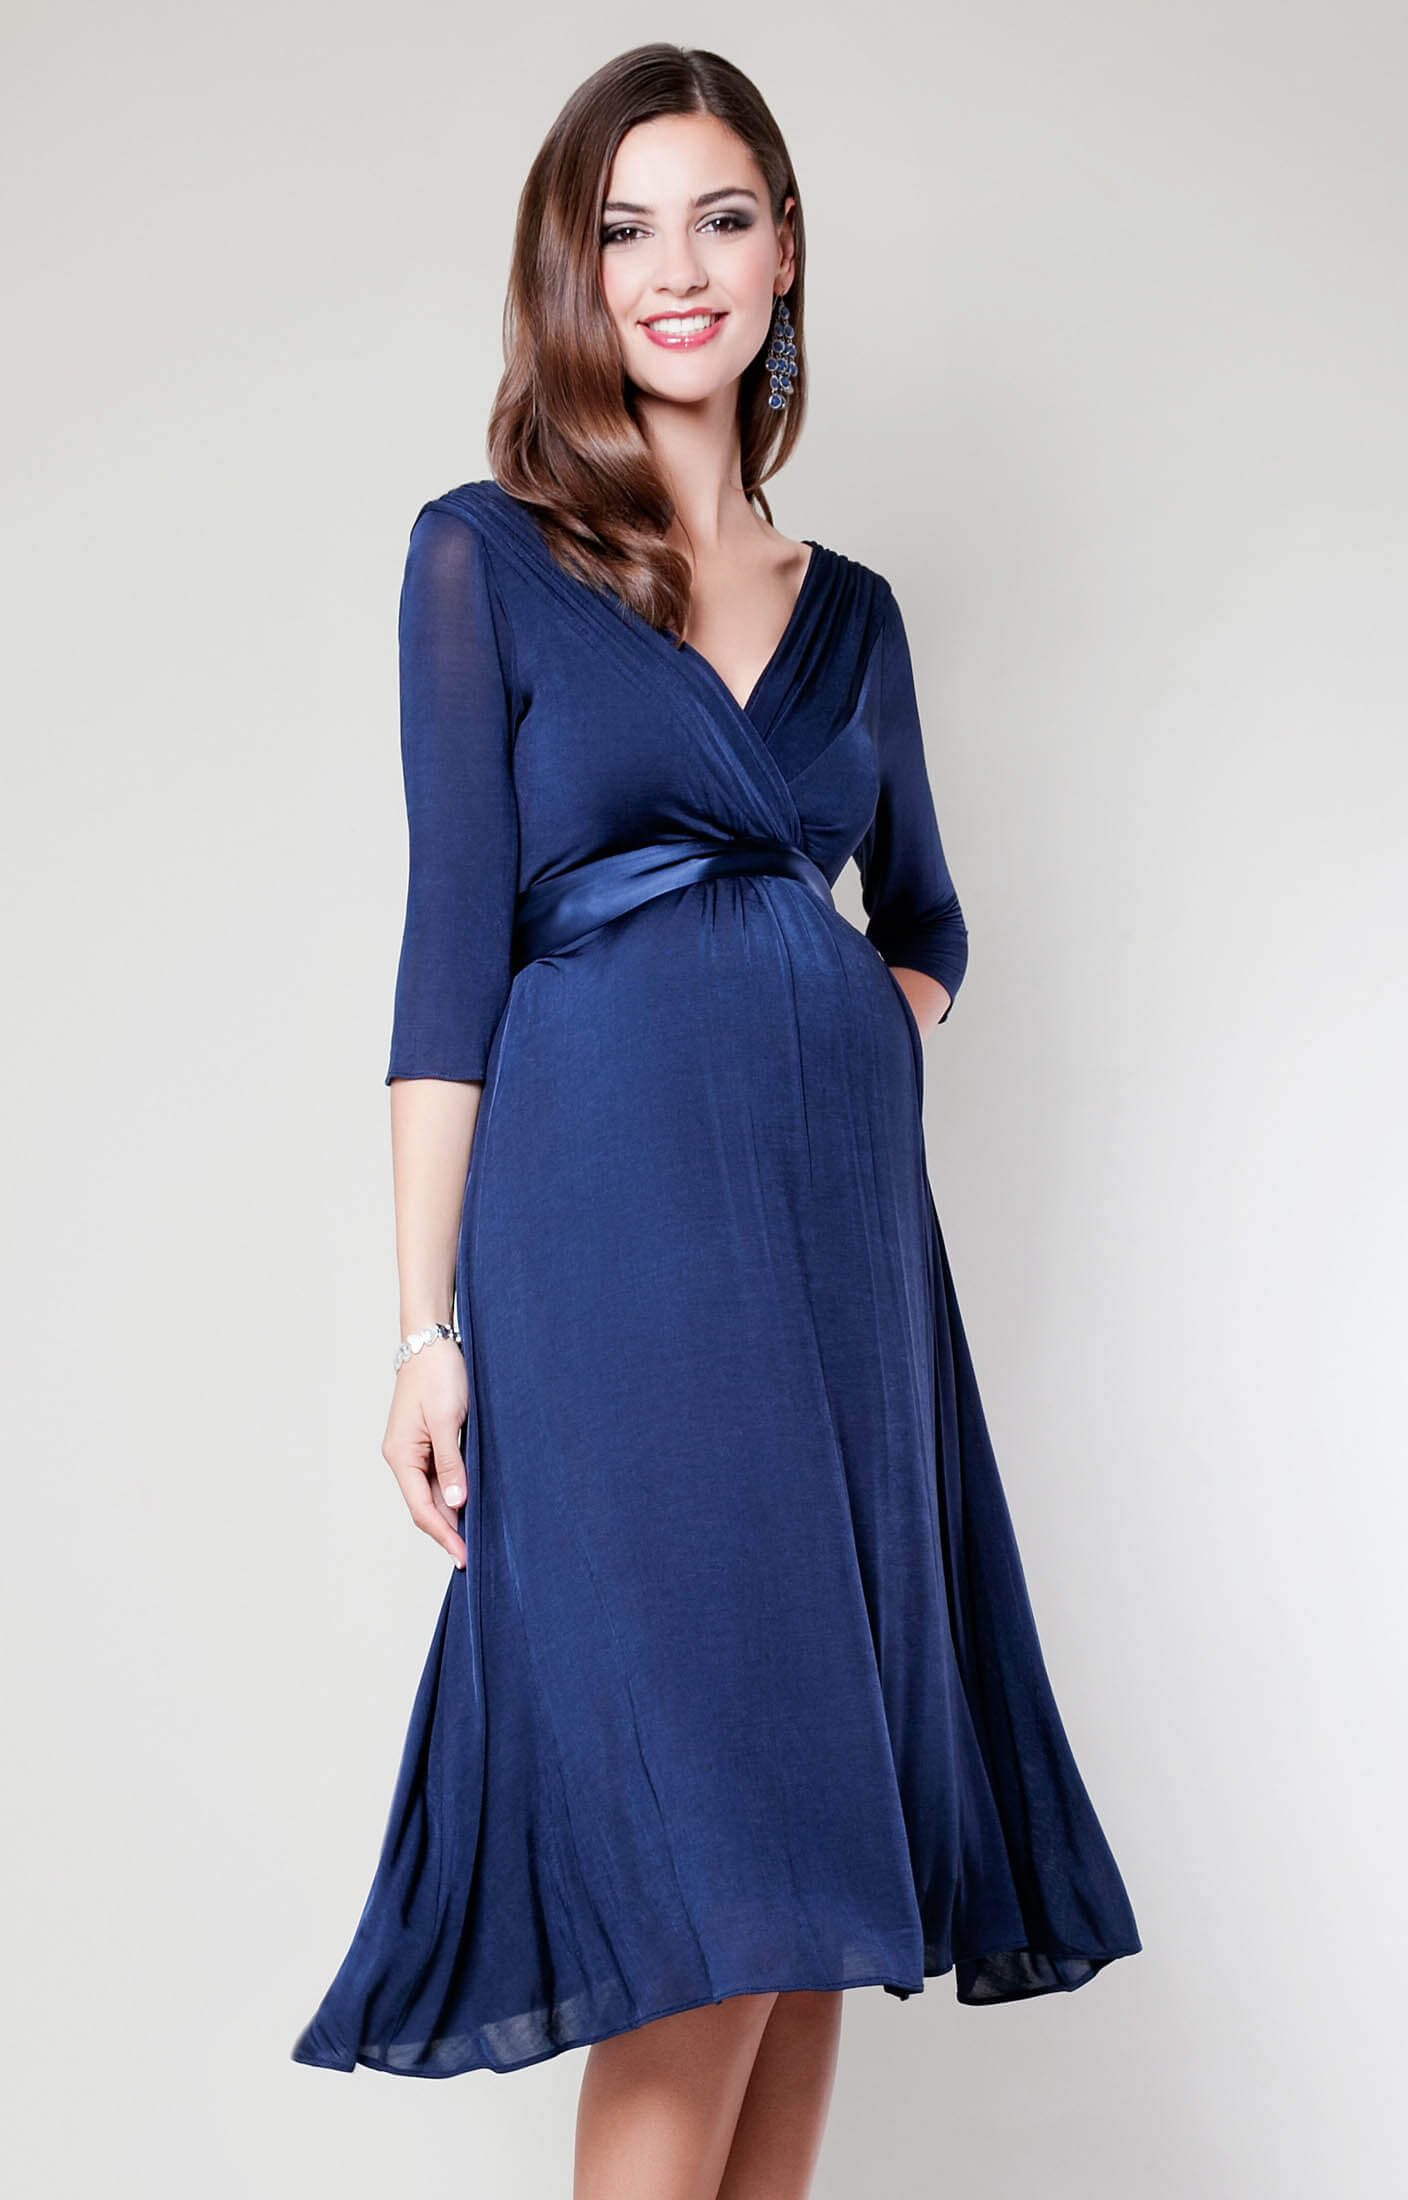 Willow maternity dress midnight blue maternity wedding dresses willow maternity dress midnight blue by tiffany rose ombrellifo Image collections